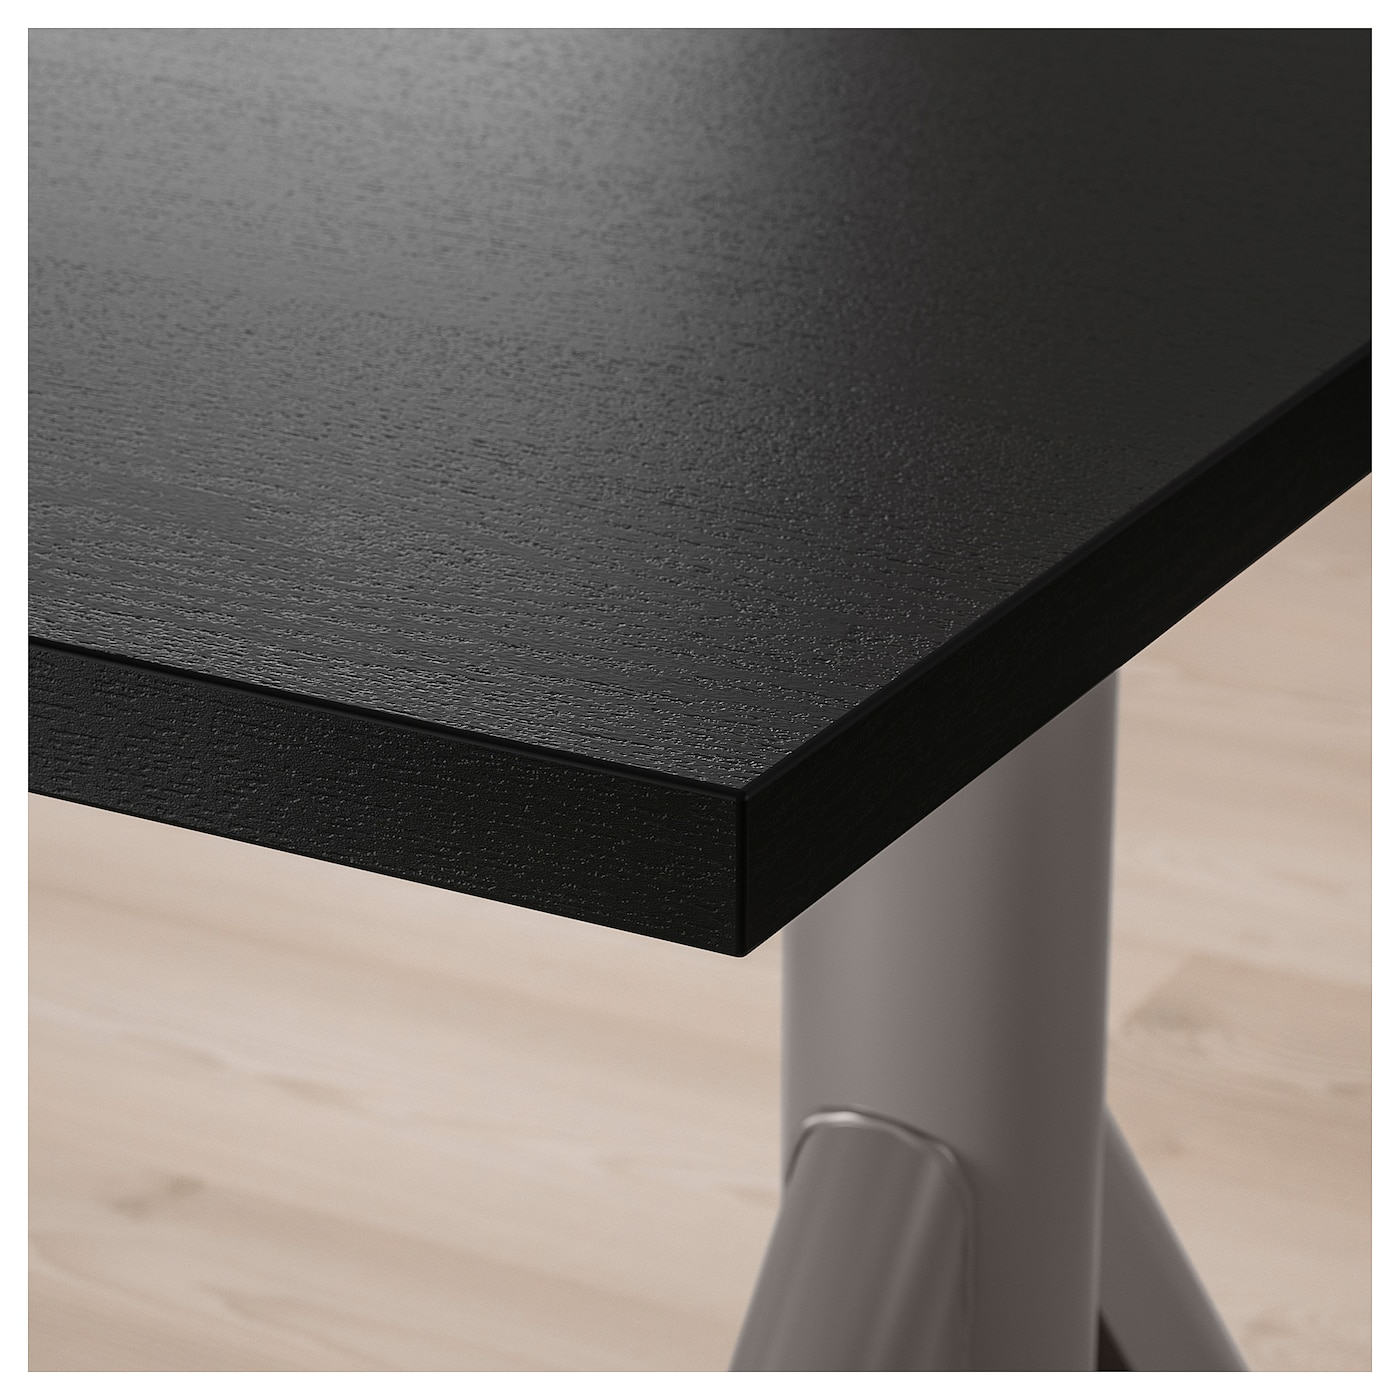 IKEA IDÅSEN desk sit/stand 10 year guarantee. Read about the terms in the guarantee brochure.